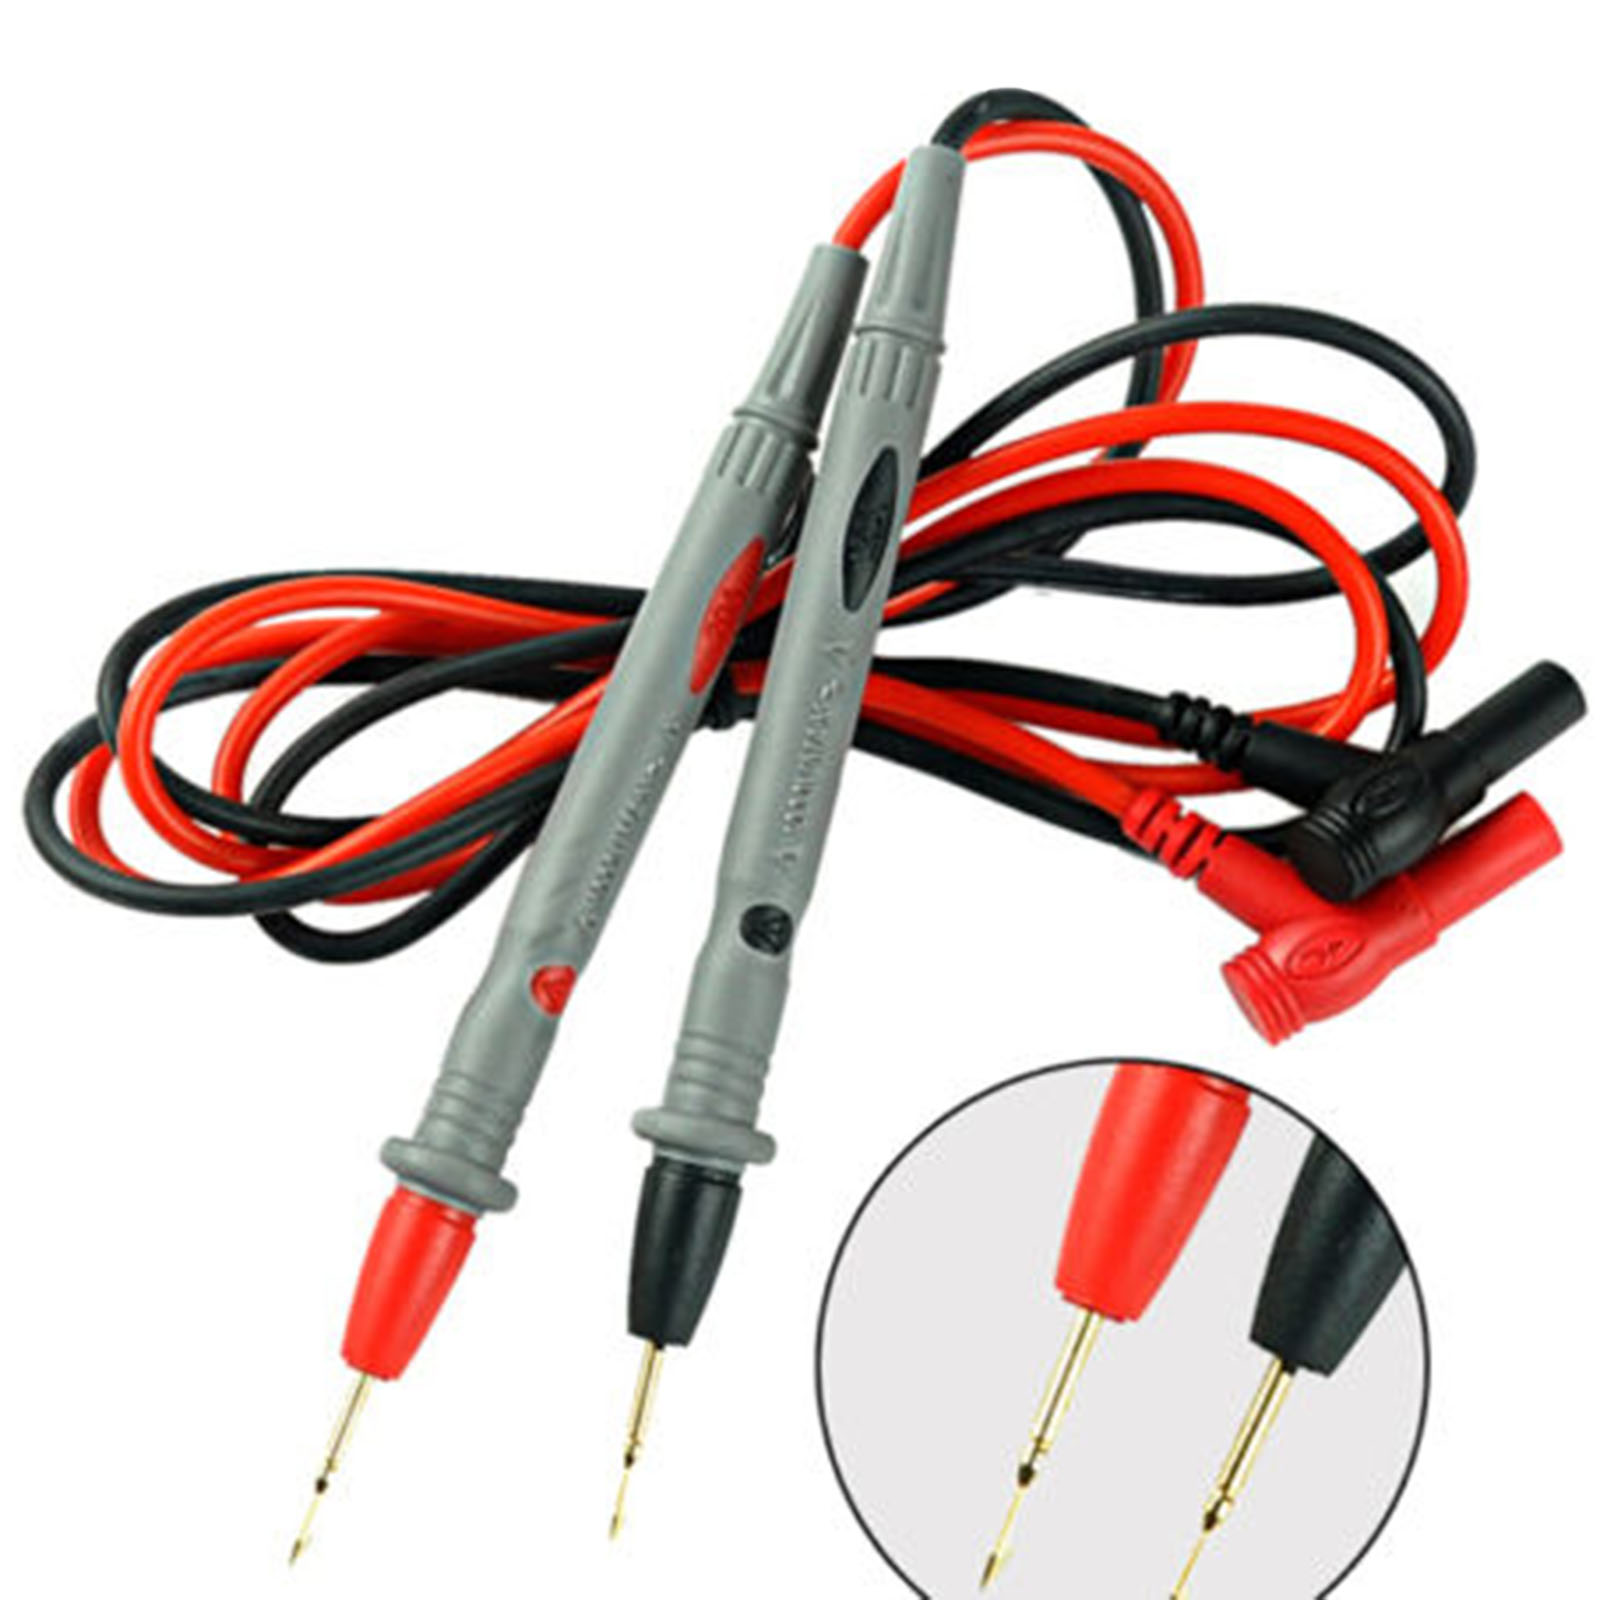 1 Pair Multi Meter Tester Lead Probe Pin For Digital Multimeter Needle Tip Meter Wire Pen Cable 10A elecall a 18 j pvc needle tip probe test leads pin hot universal digital multimeter multi meter tester lead probe wire pen cable